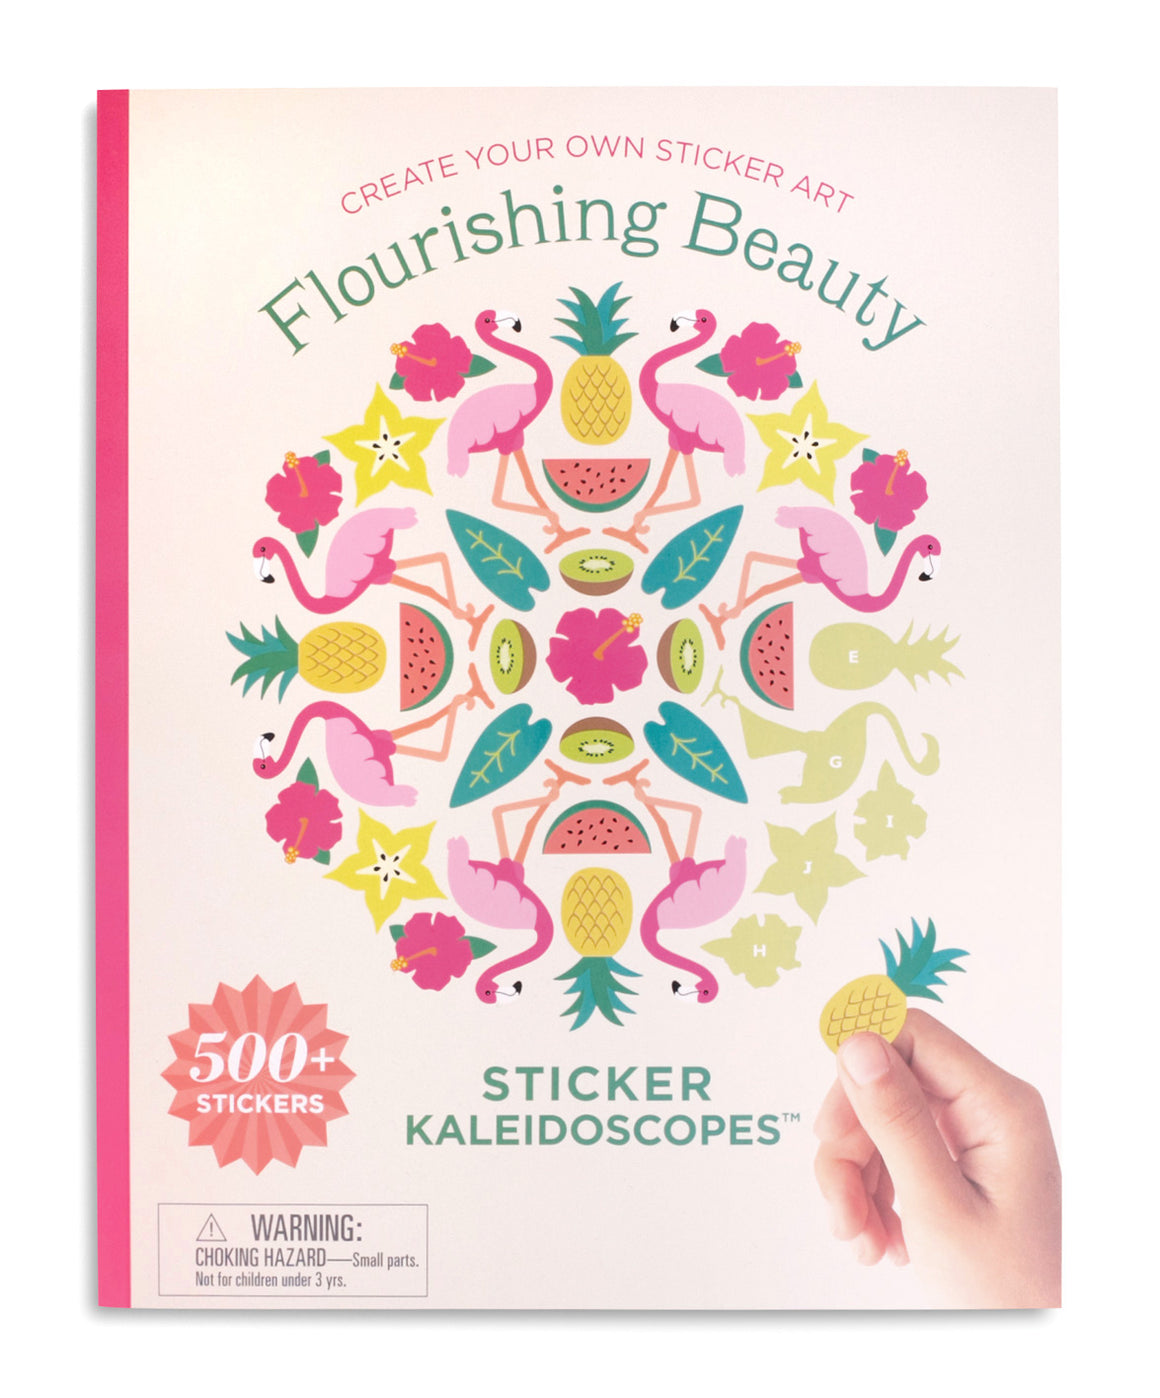 Flourishing Beauty Sticker Kaleidoscopes™ Book - Mrs. Grossman's